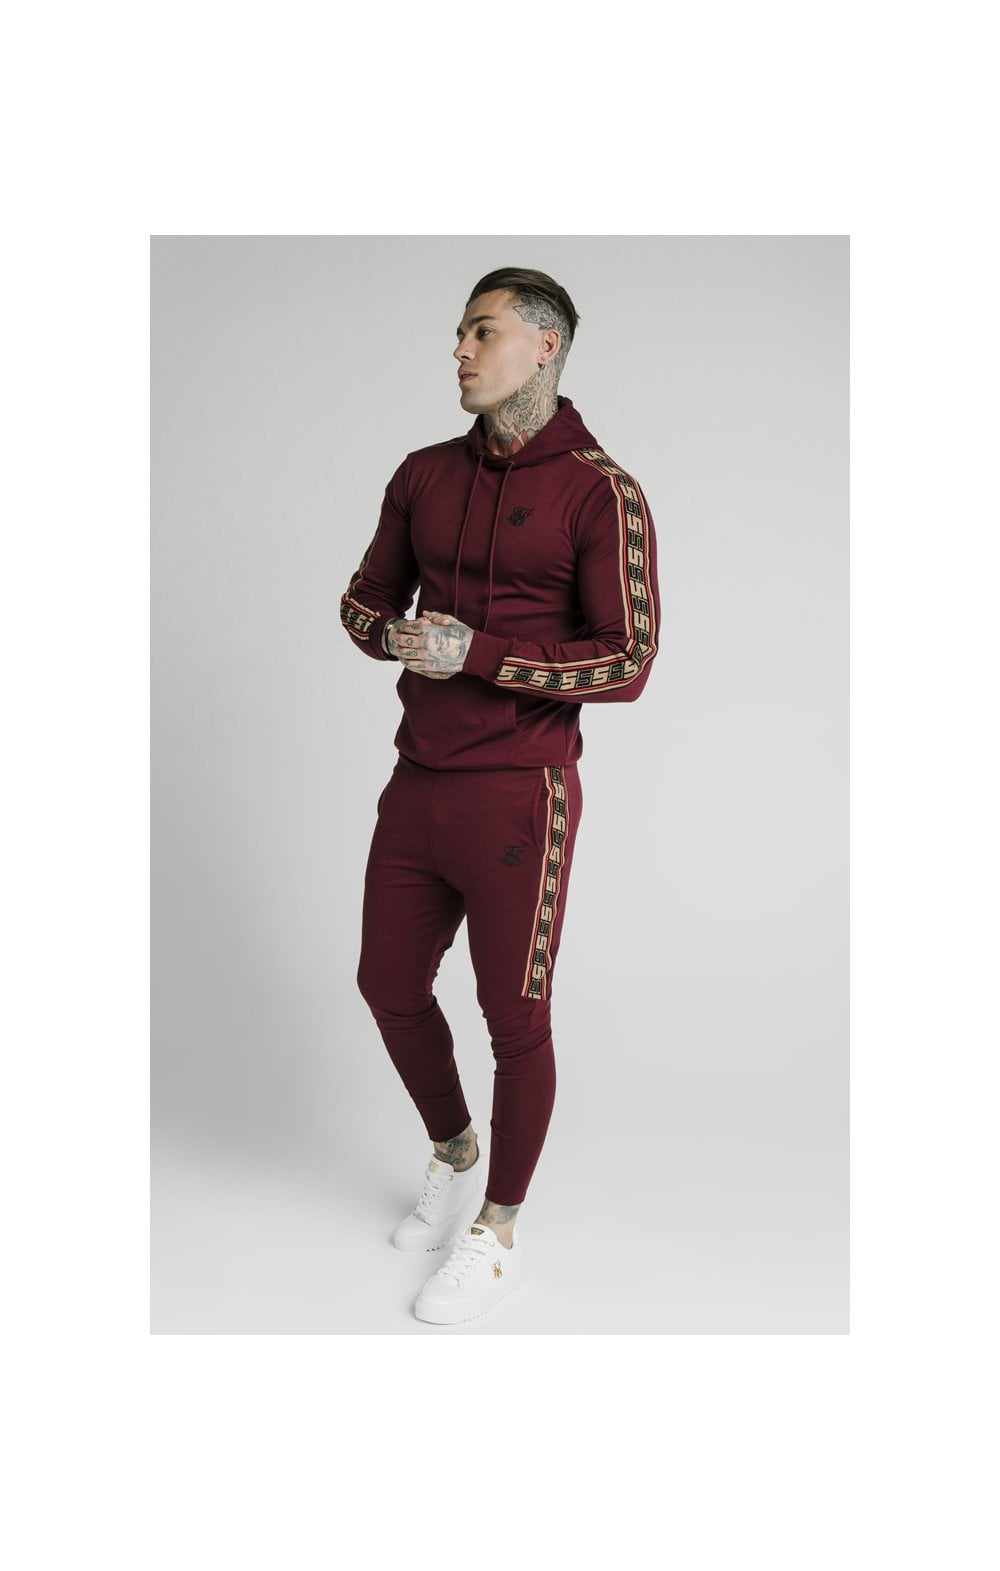 Load image into Gallery viewer, SikSilk Jacquard Retro Overhead Hoodie - Burgundy (5)